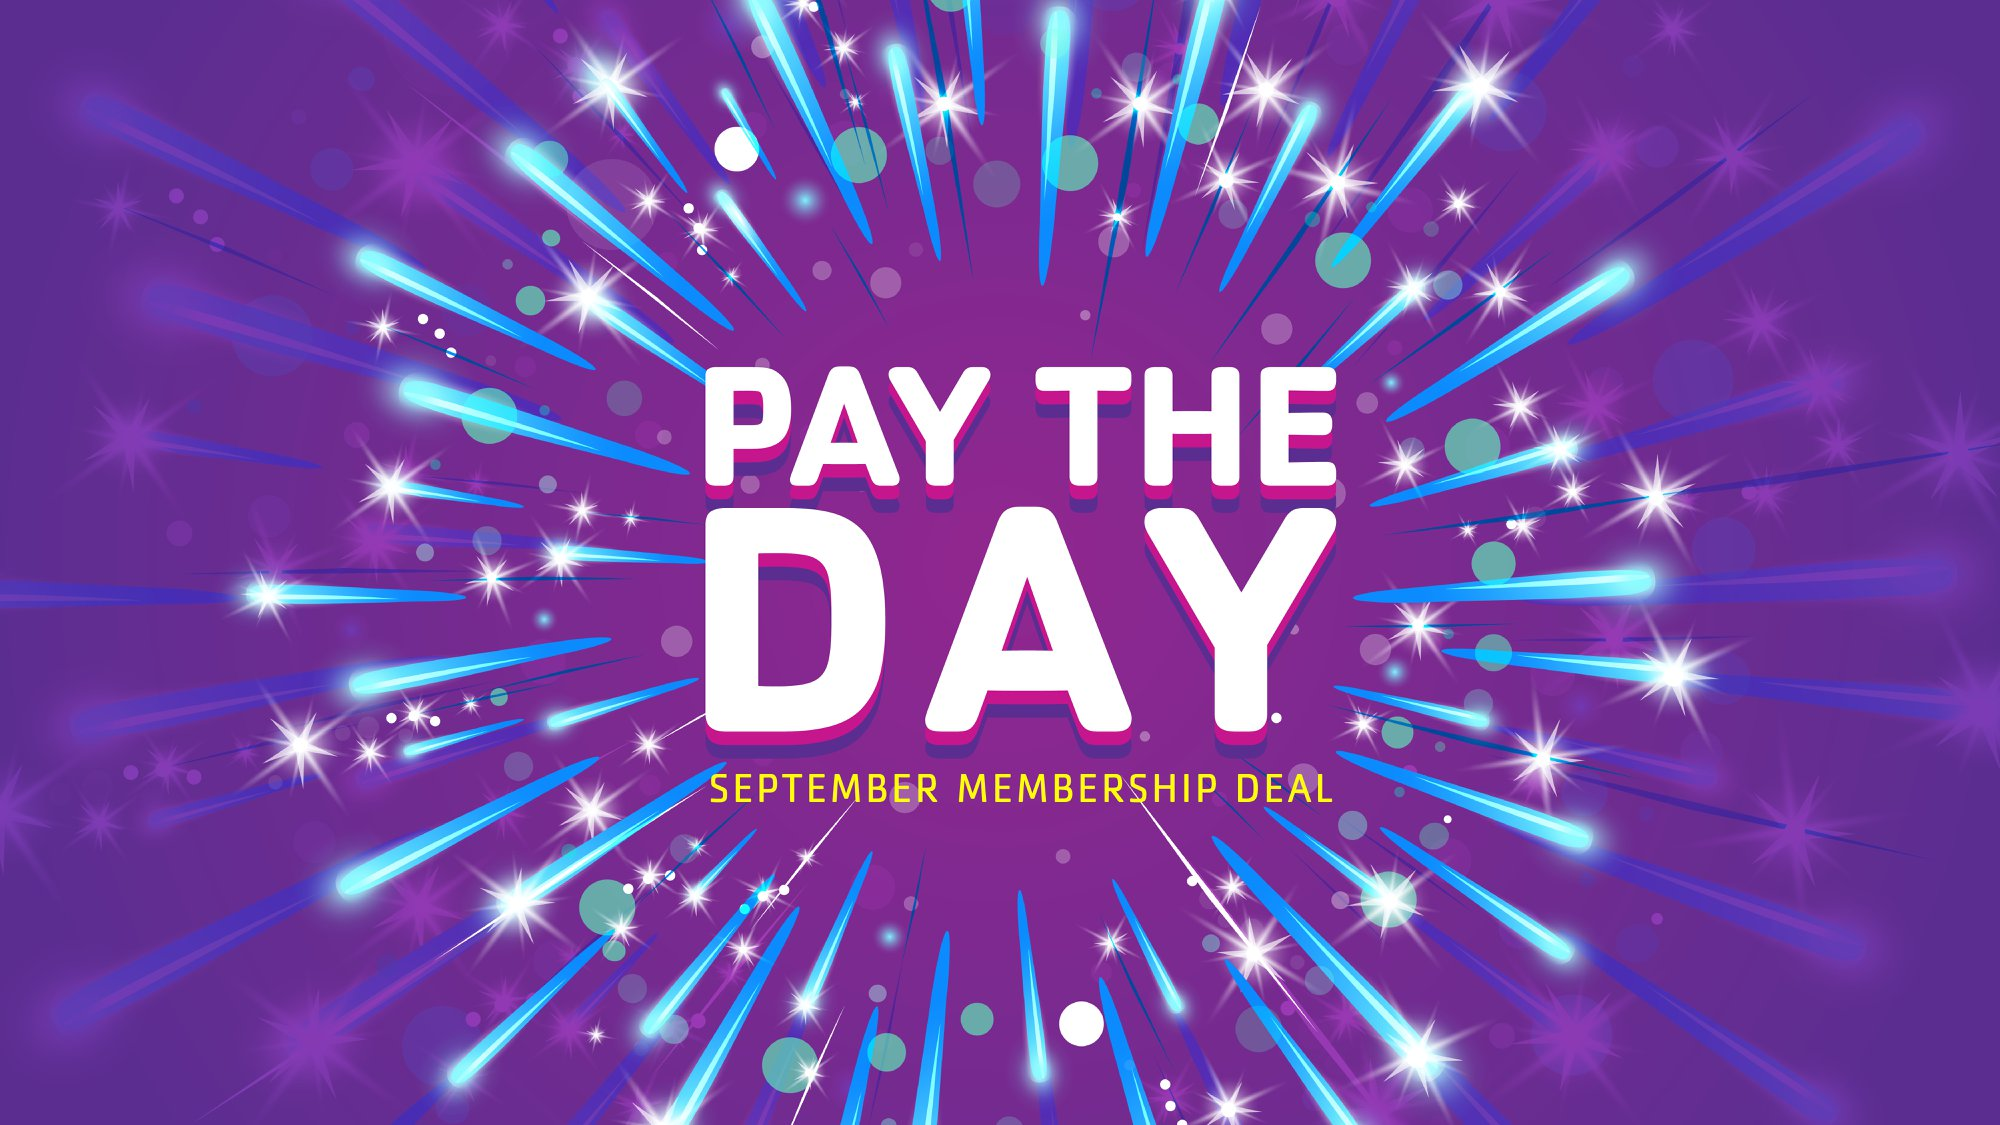 PAY THE DAY SEPTEMBER MEMBERSHIP DEAL